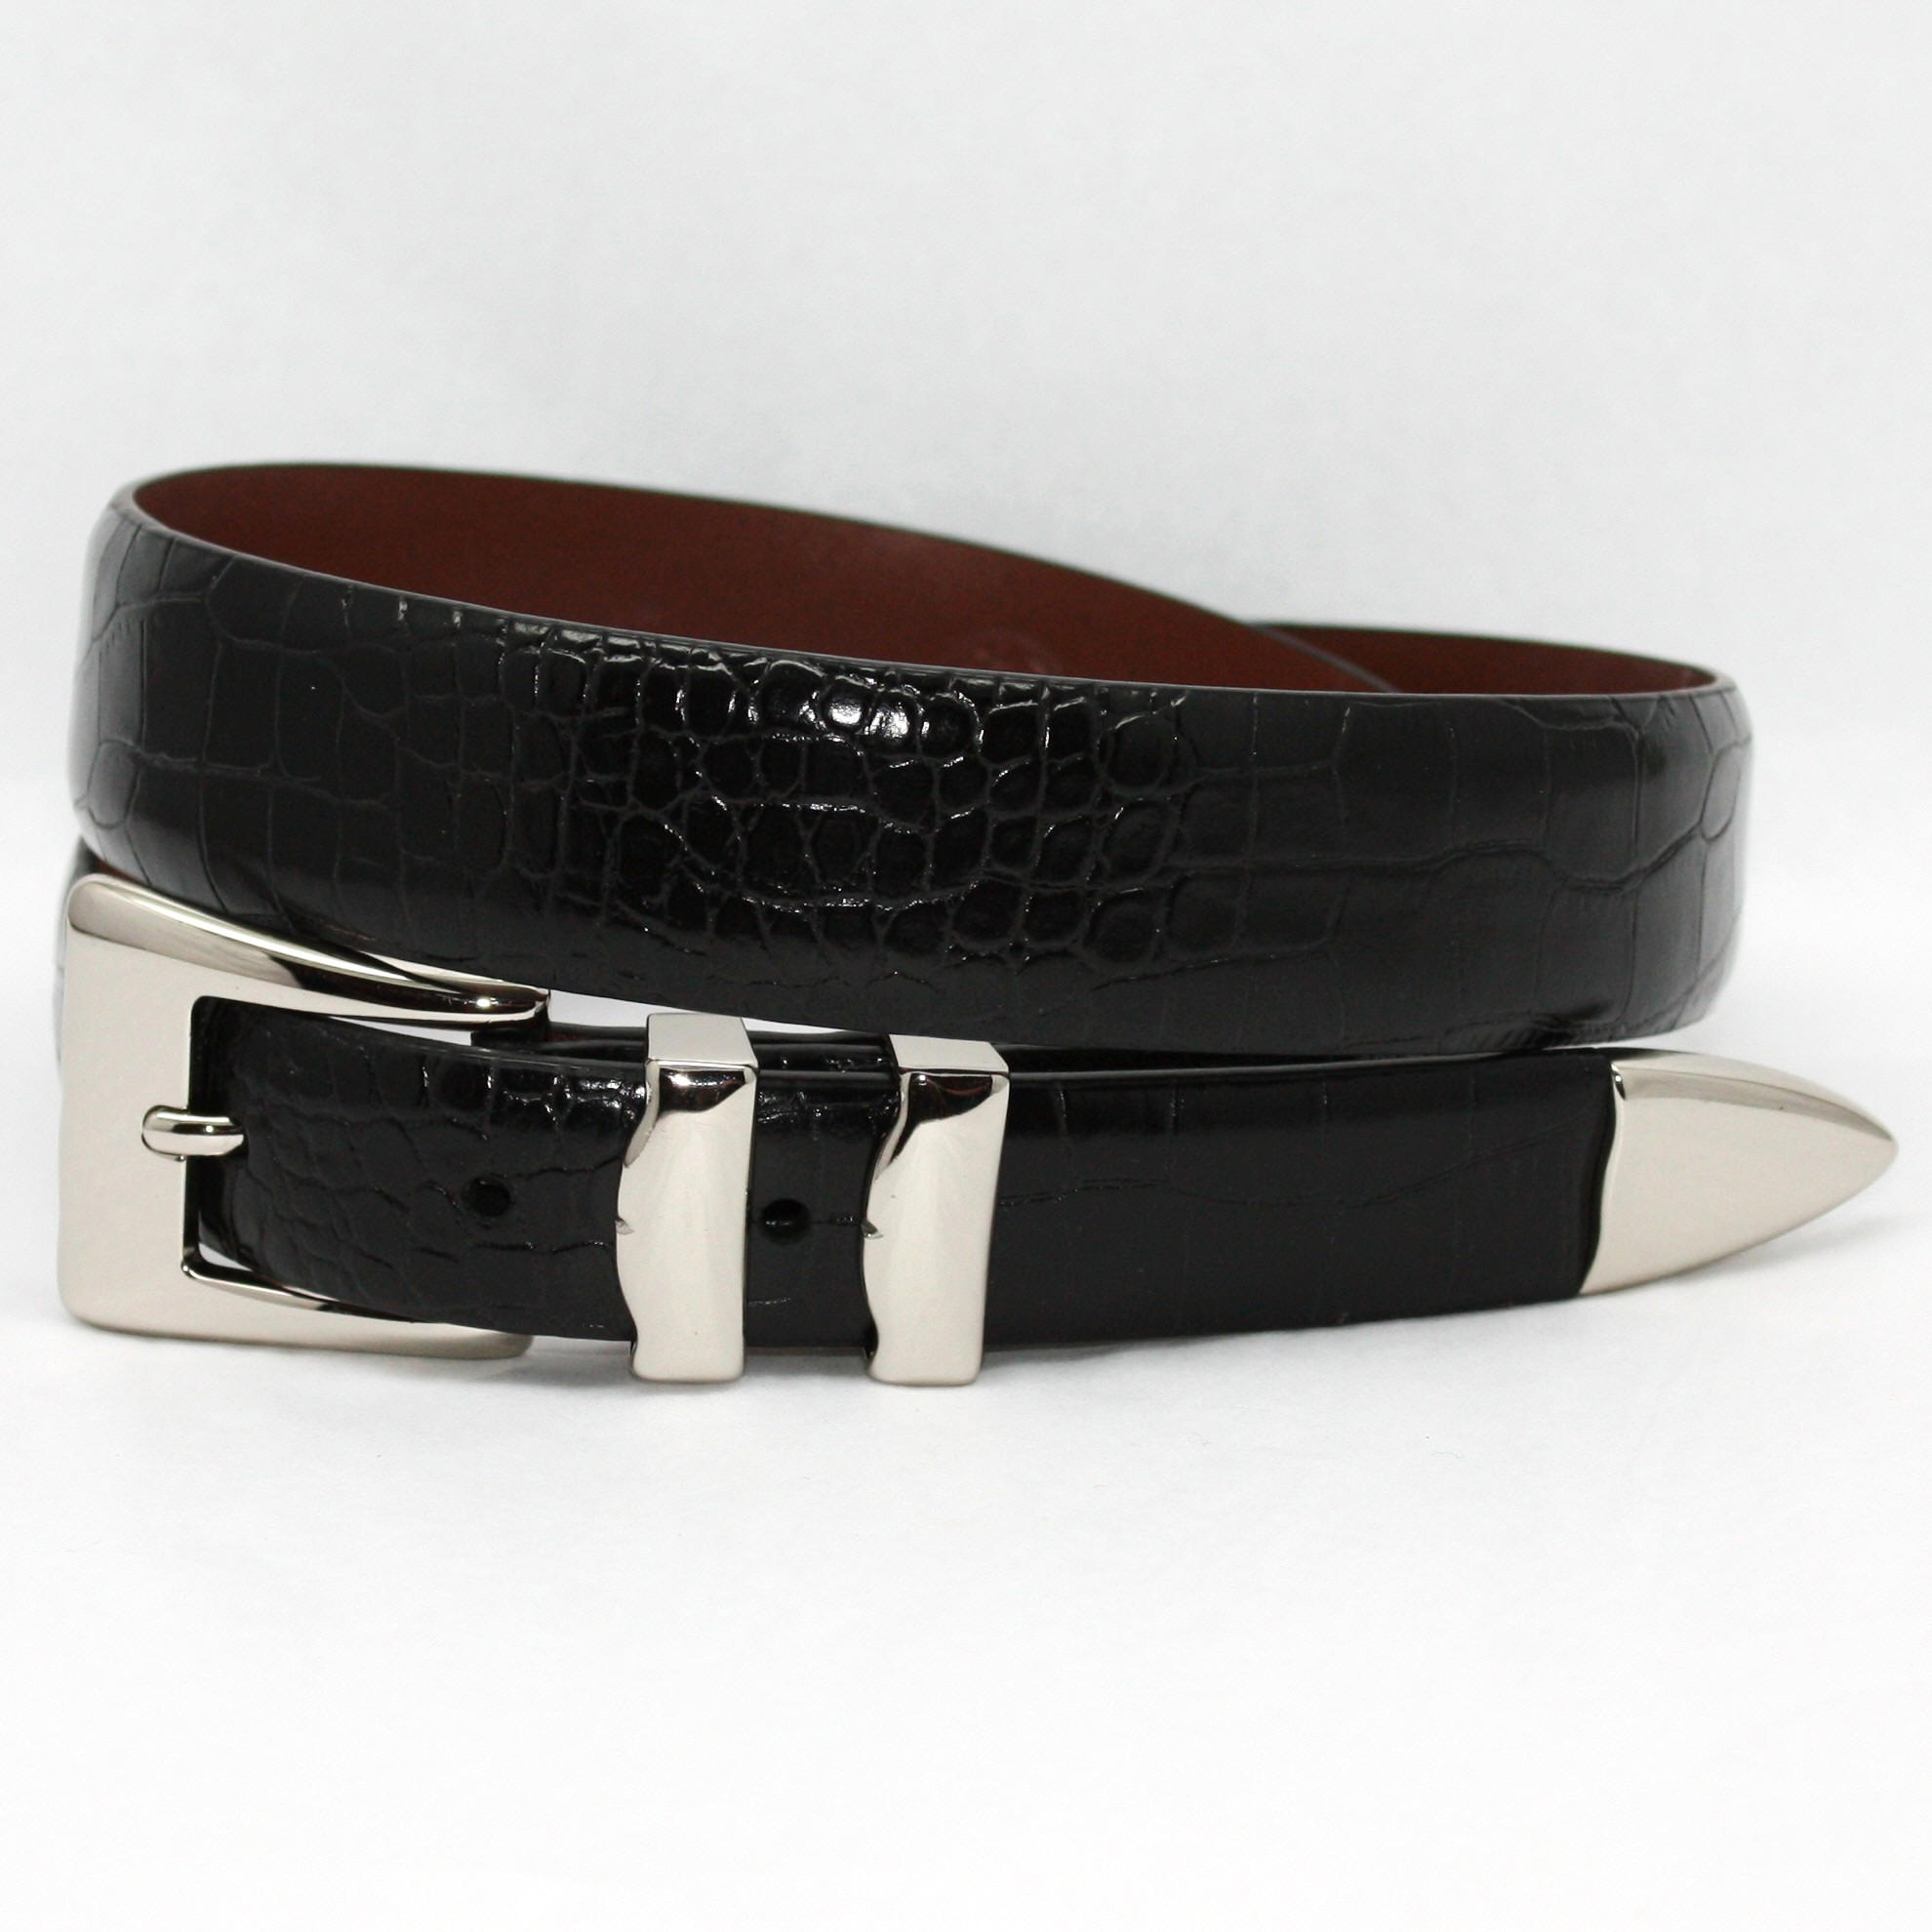 torino dress leather belts from dann mens clothing